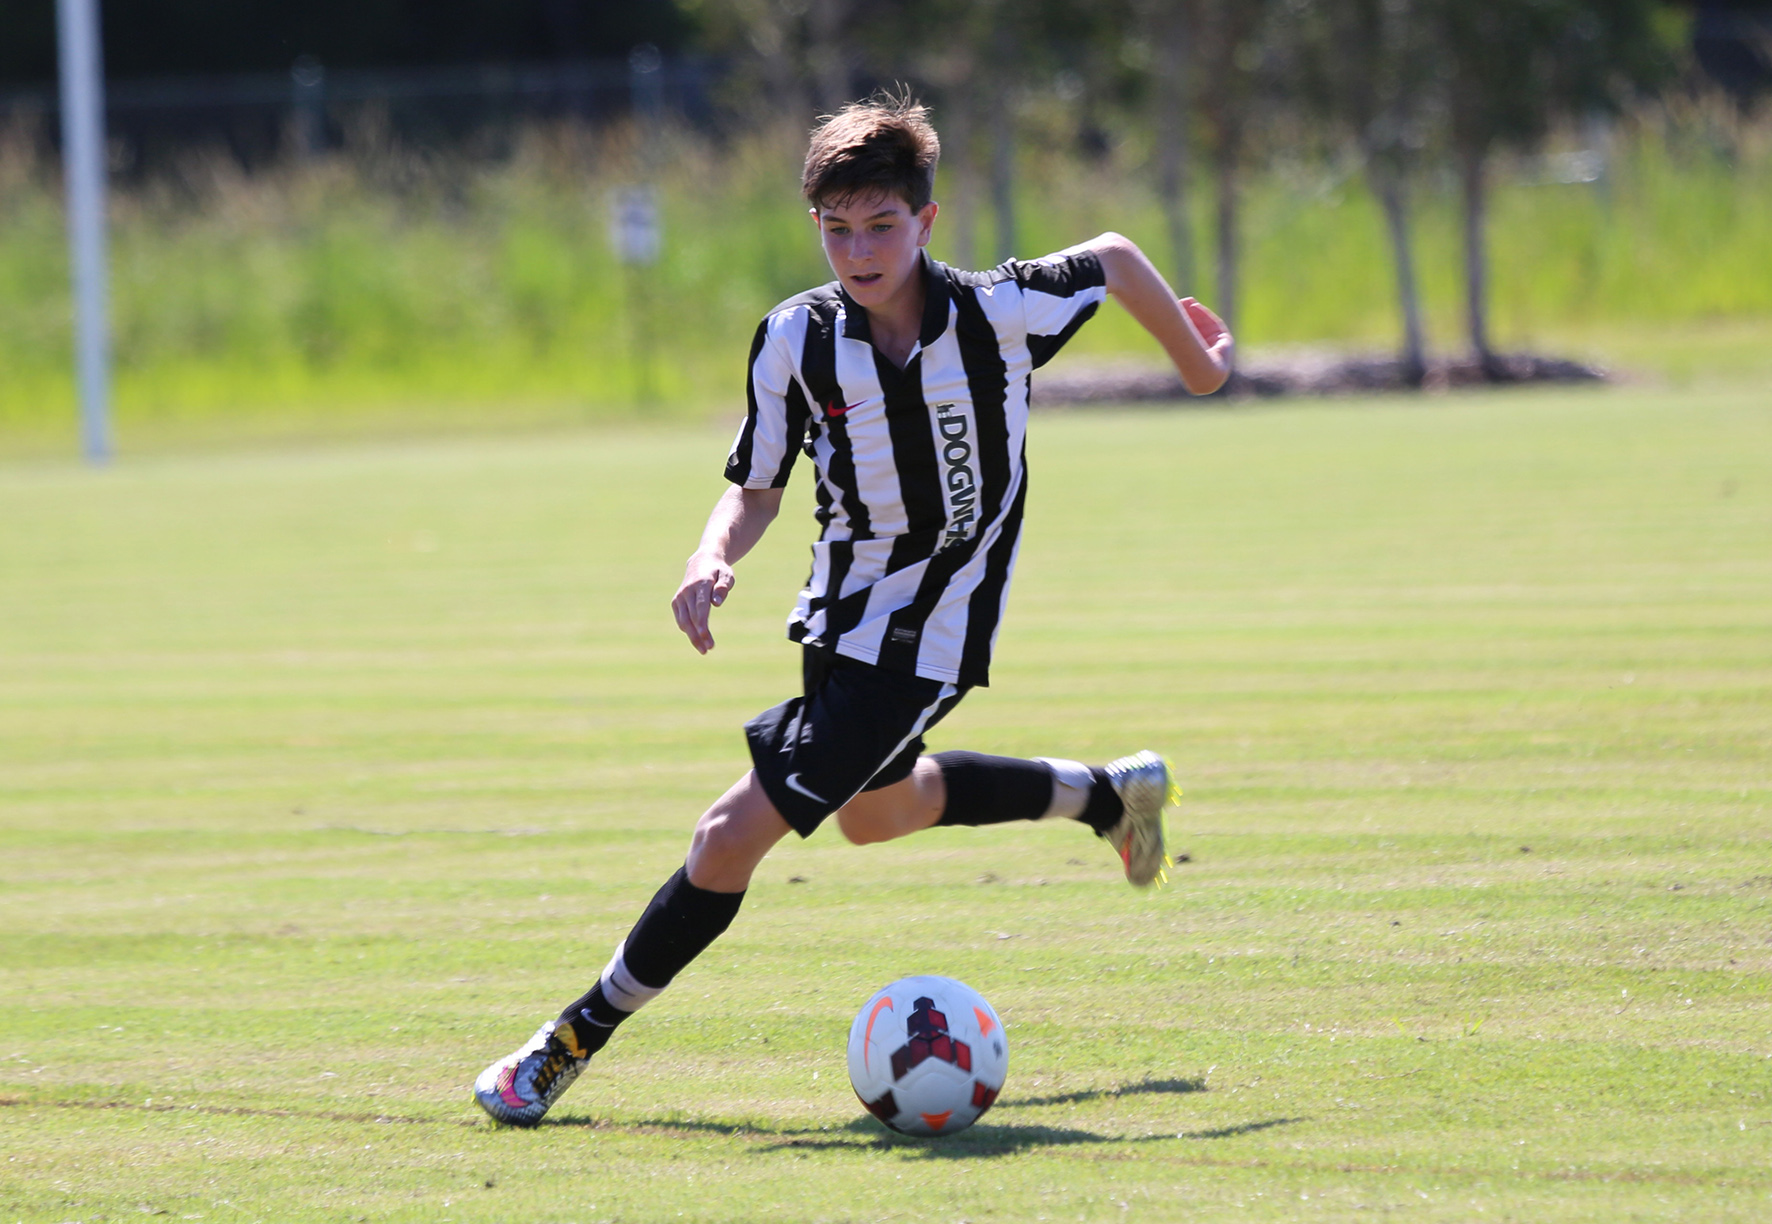 Under 16 striker Zac Sezer opened the scoring for Byron